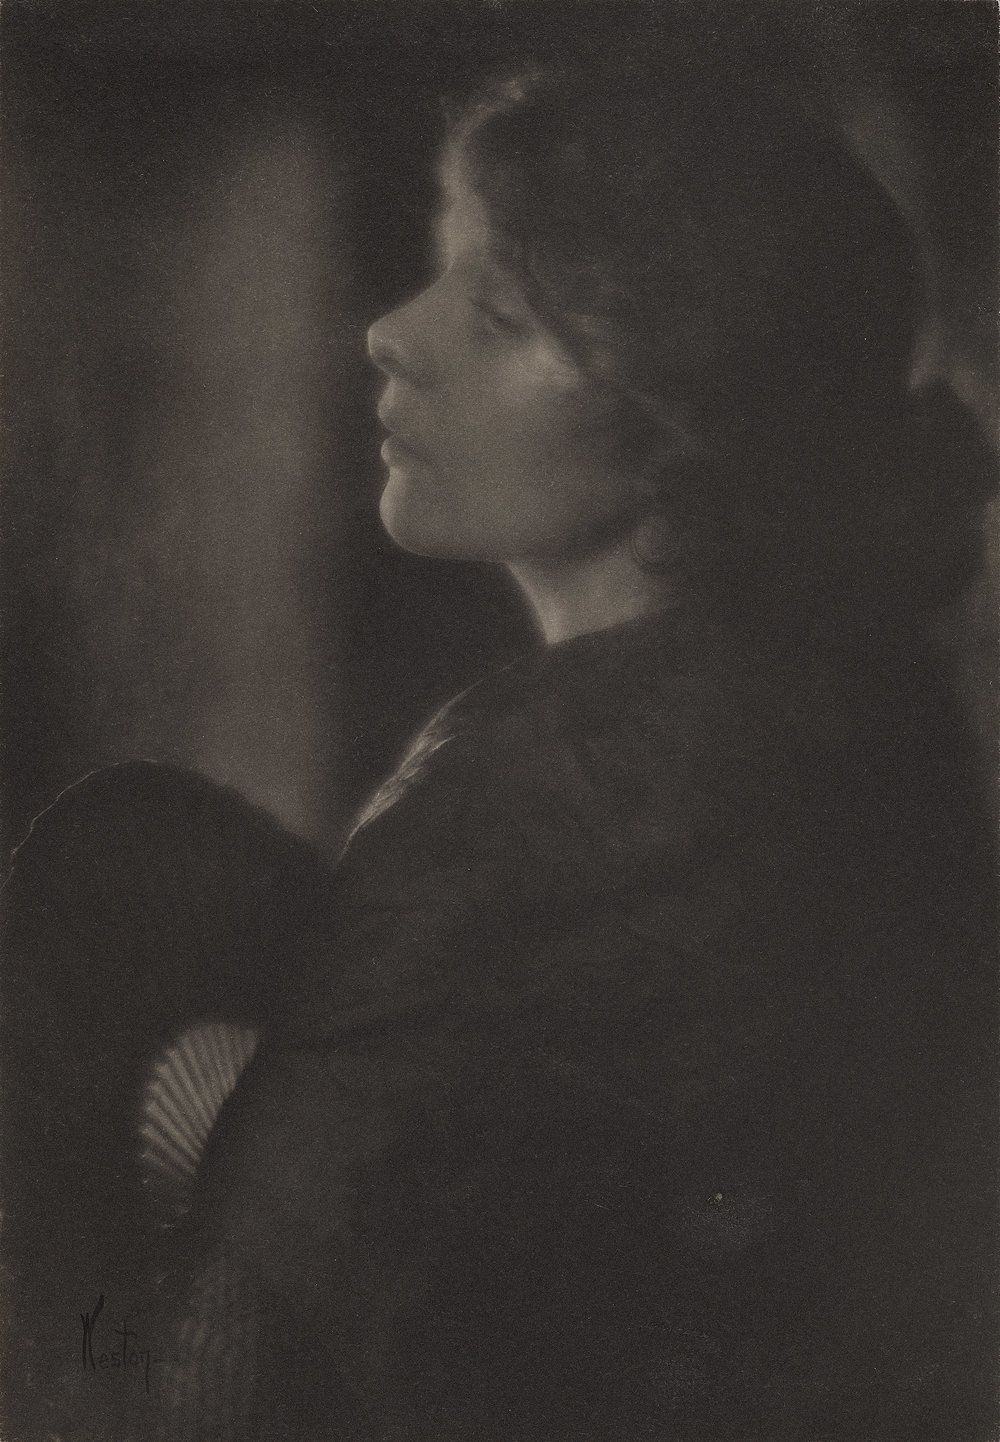 Margrethe Mather, The Lane Collection, Photograph © Museum of Fine Arts, Boston